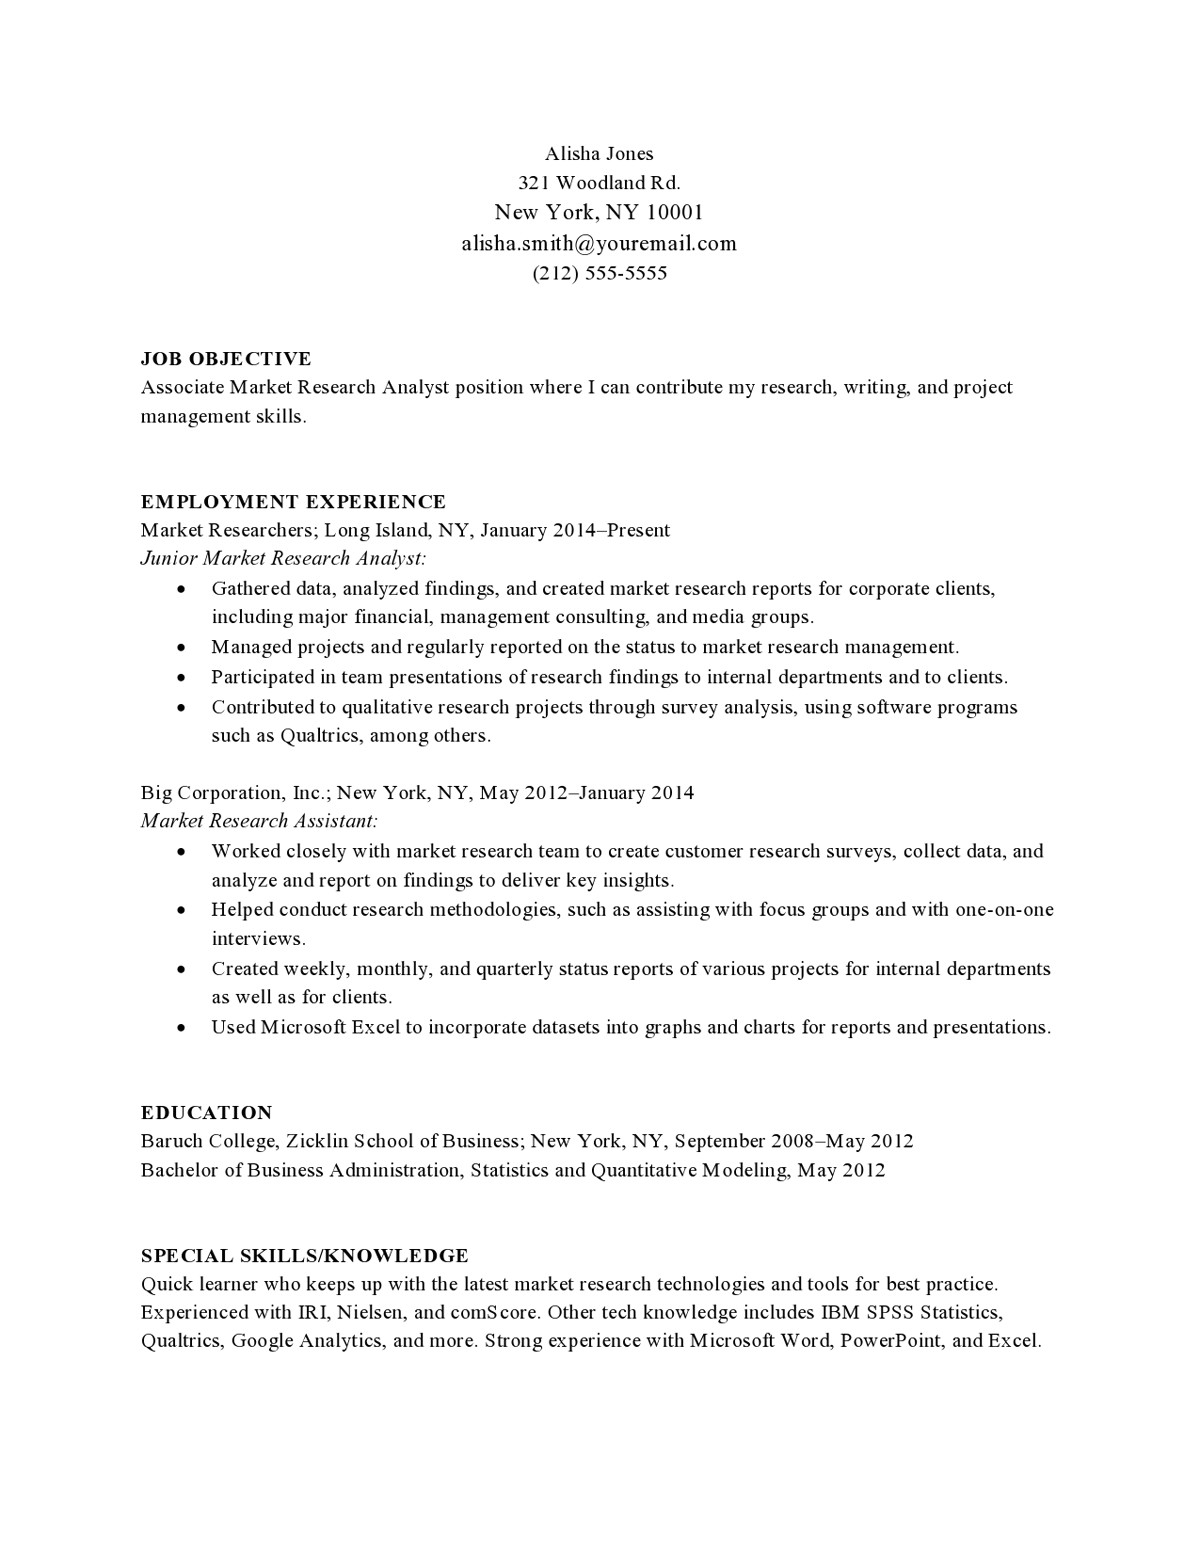 market research entry level chronological resume objective